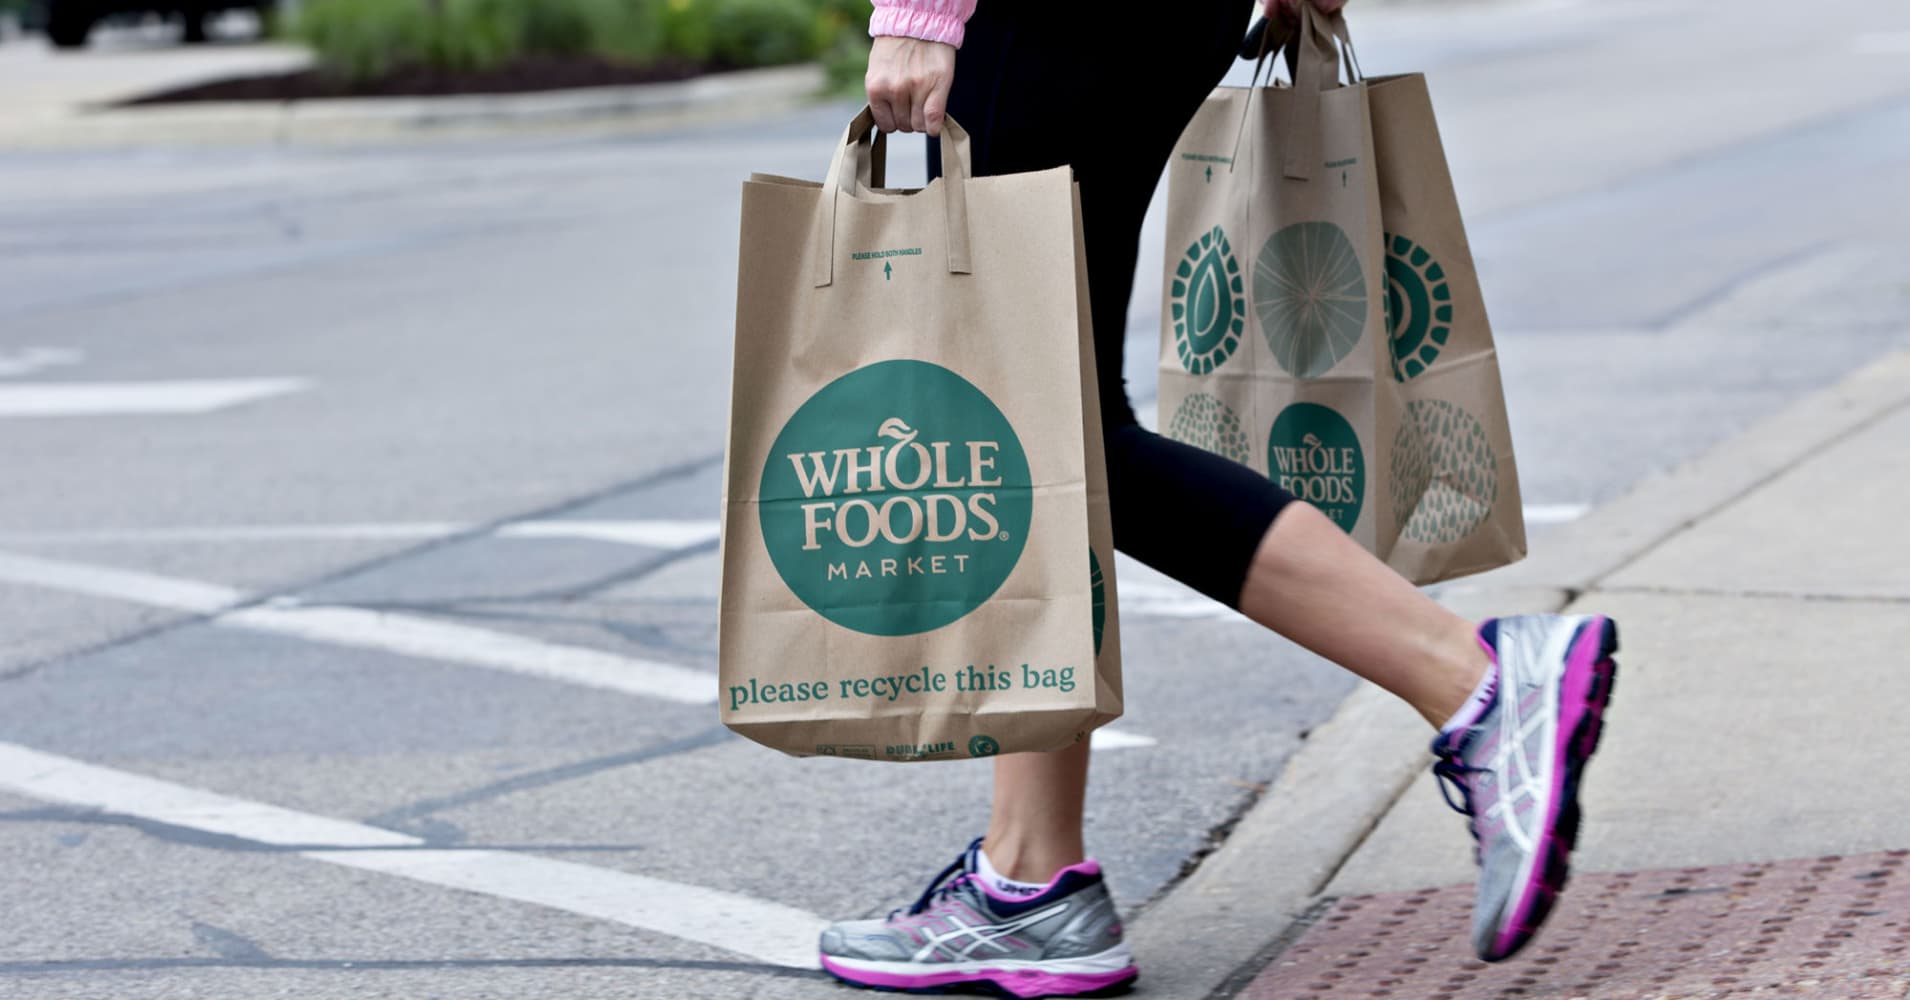 Amazon's soaring goodwill balance shows how Whole Foods buy was a long-term bet